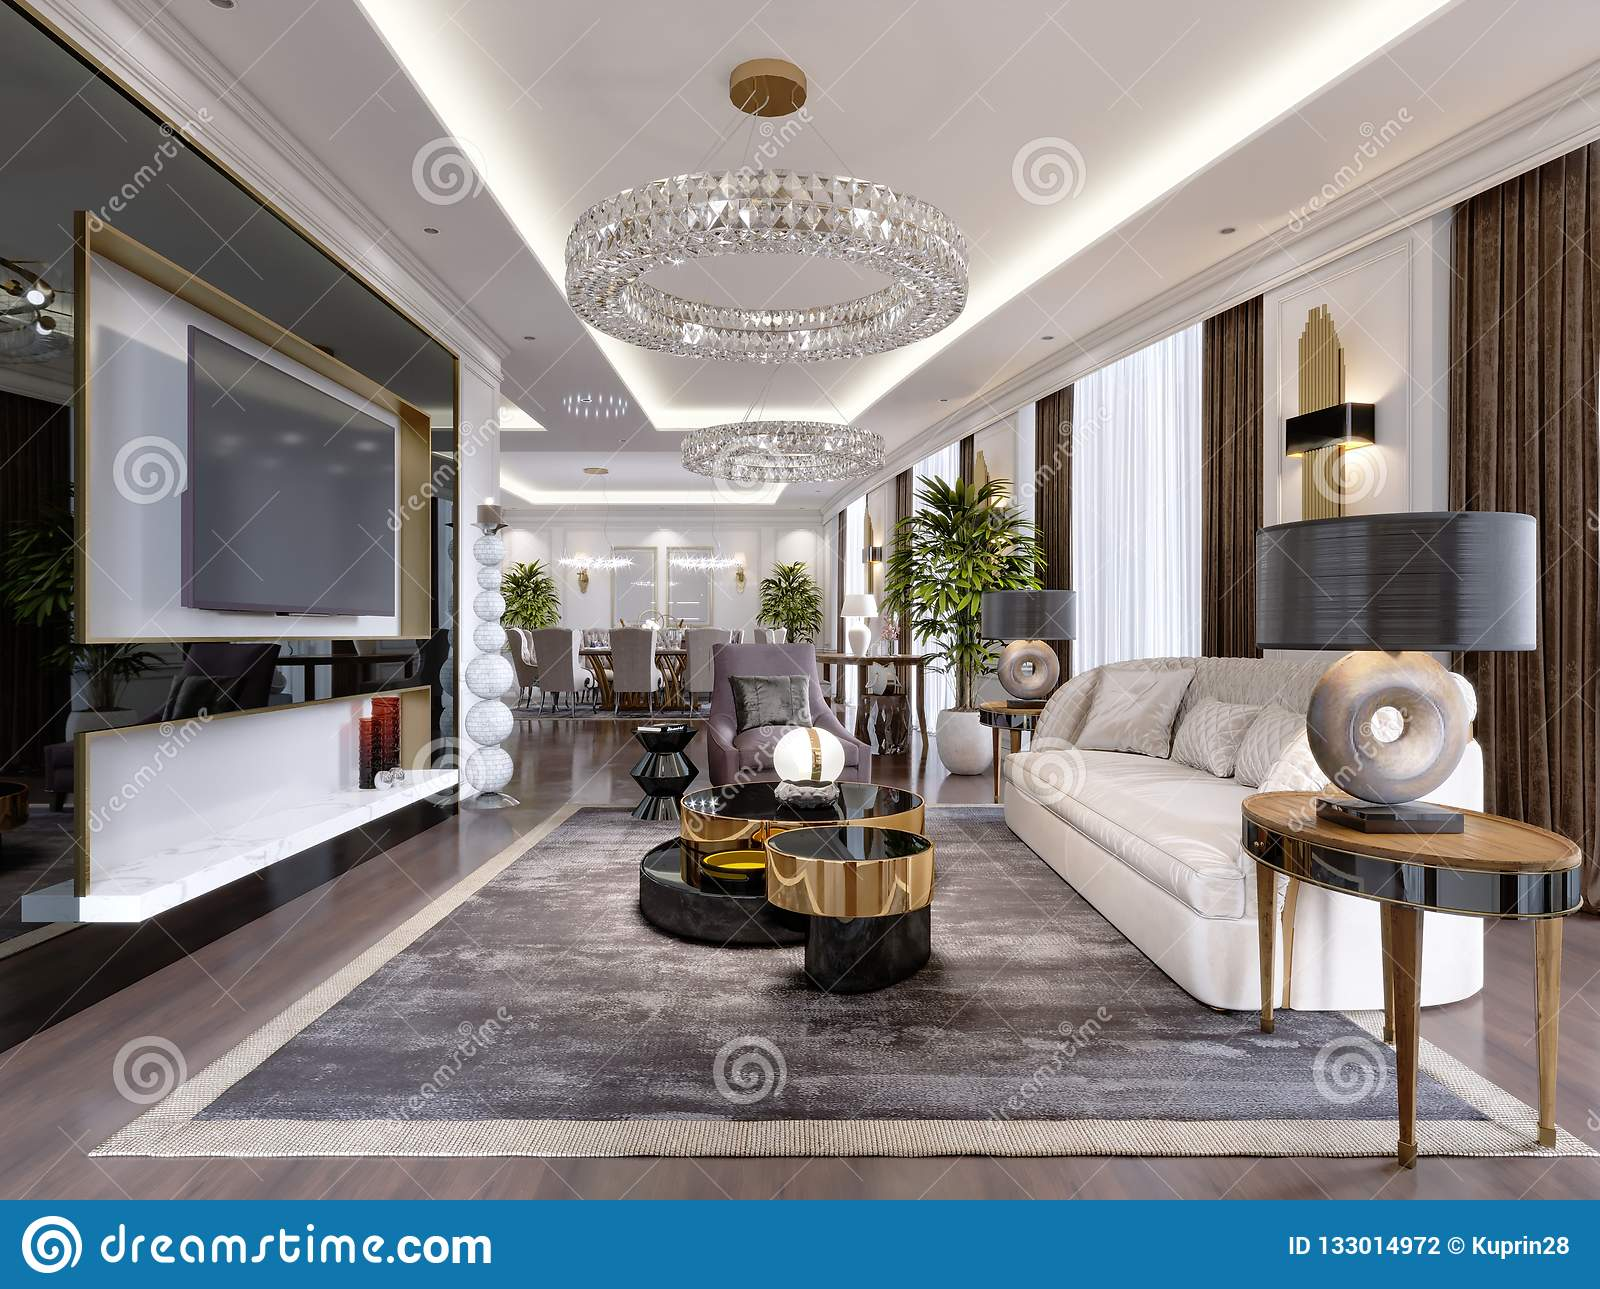 A Modern Classic Style Hotel Room With A Lounge And Dining